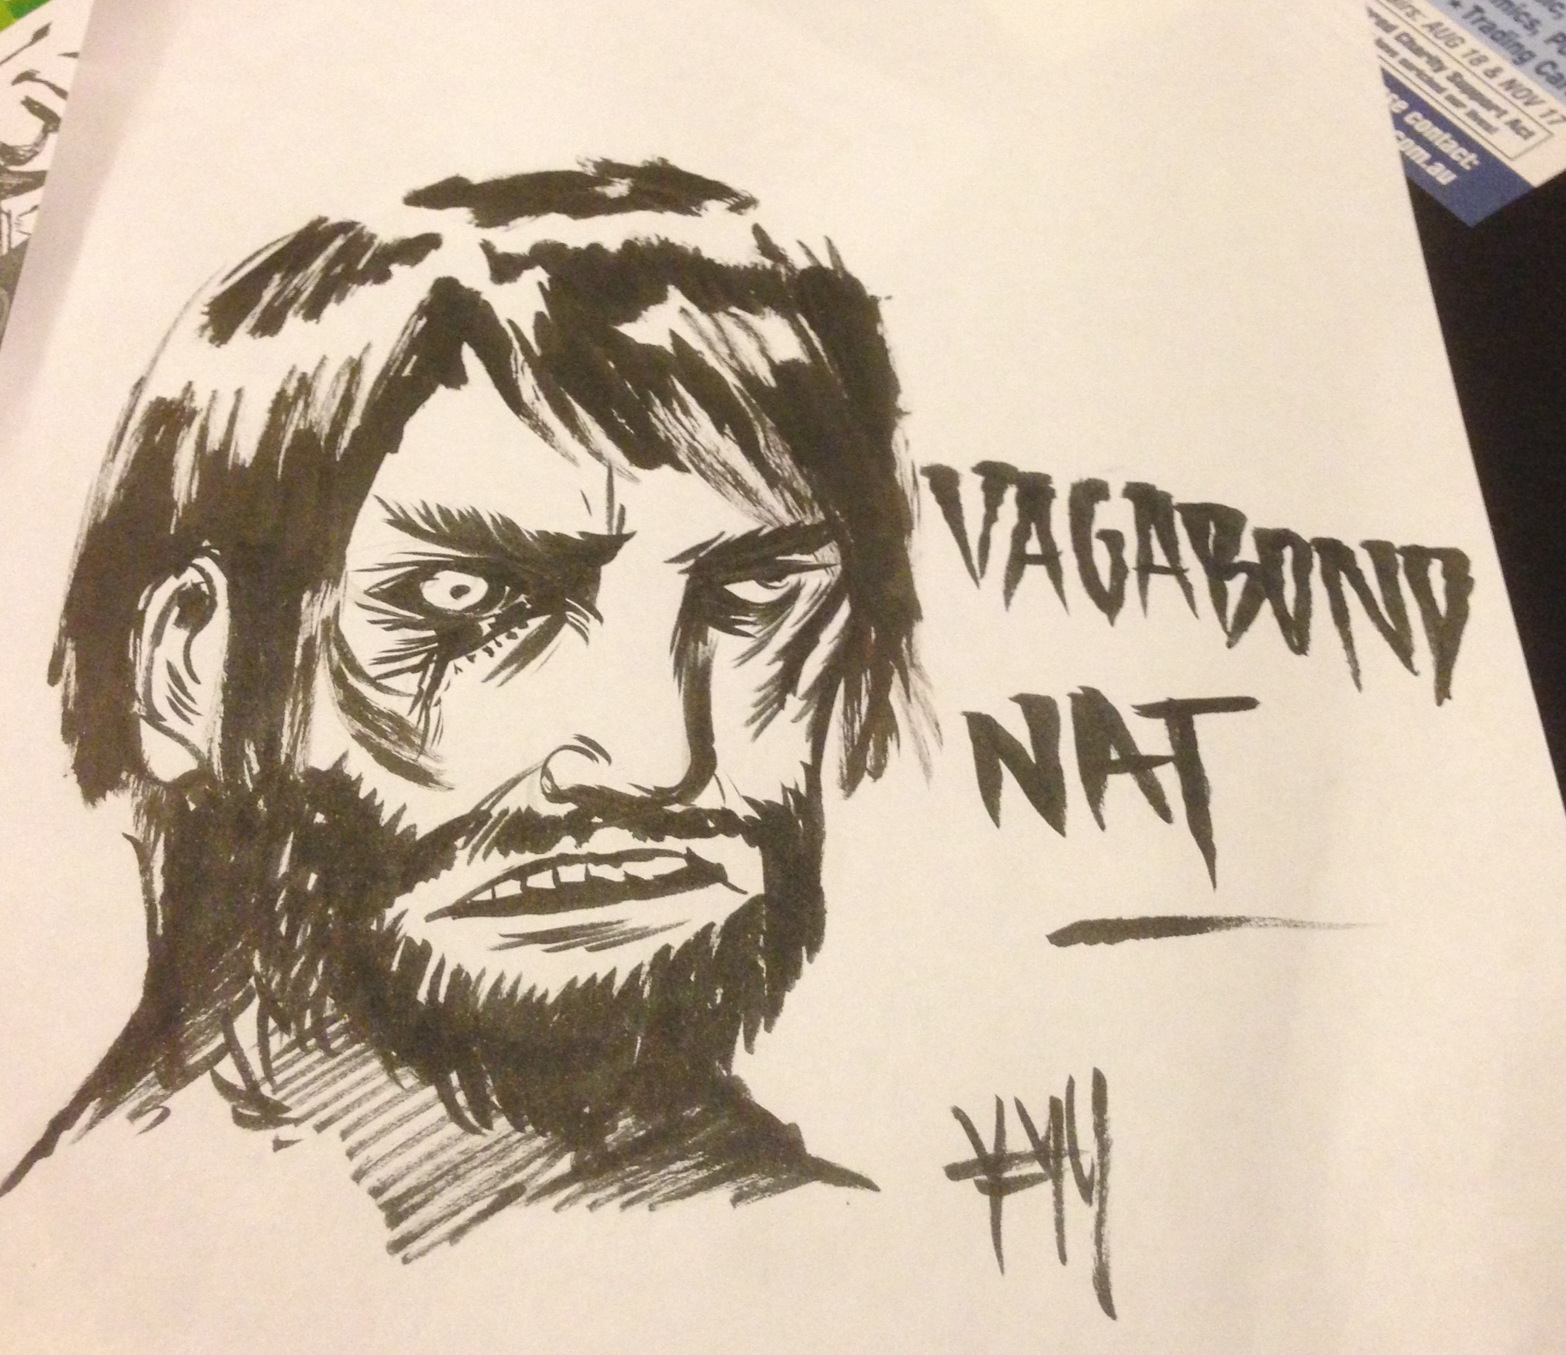 Free Comic Book Day Kinokuniya: The Vagabond: May 2013